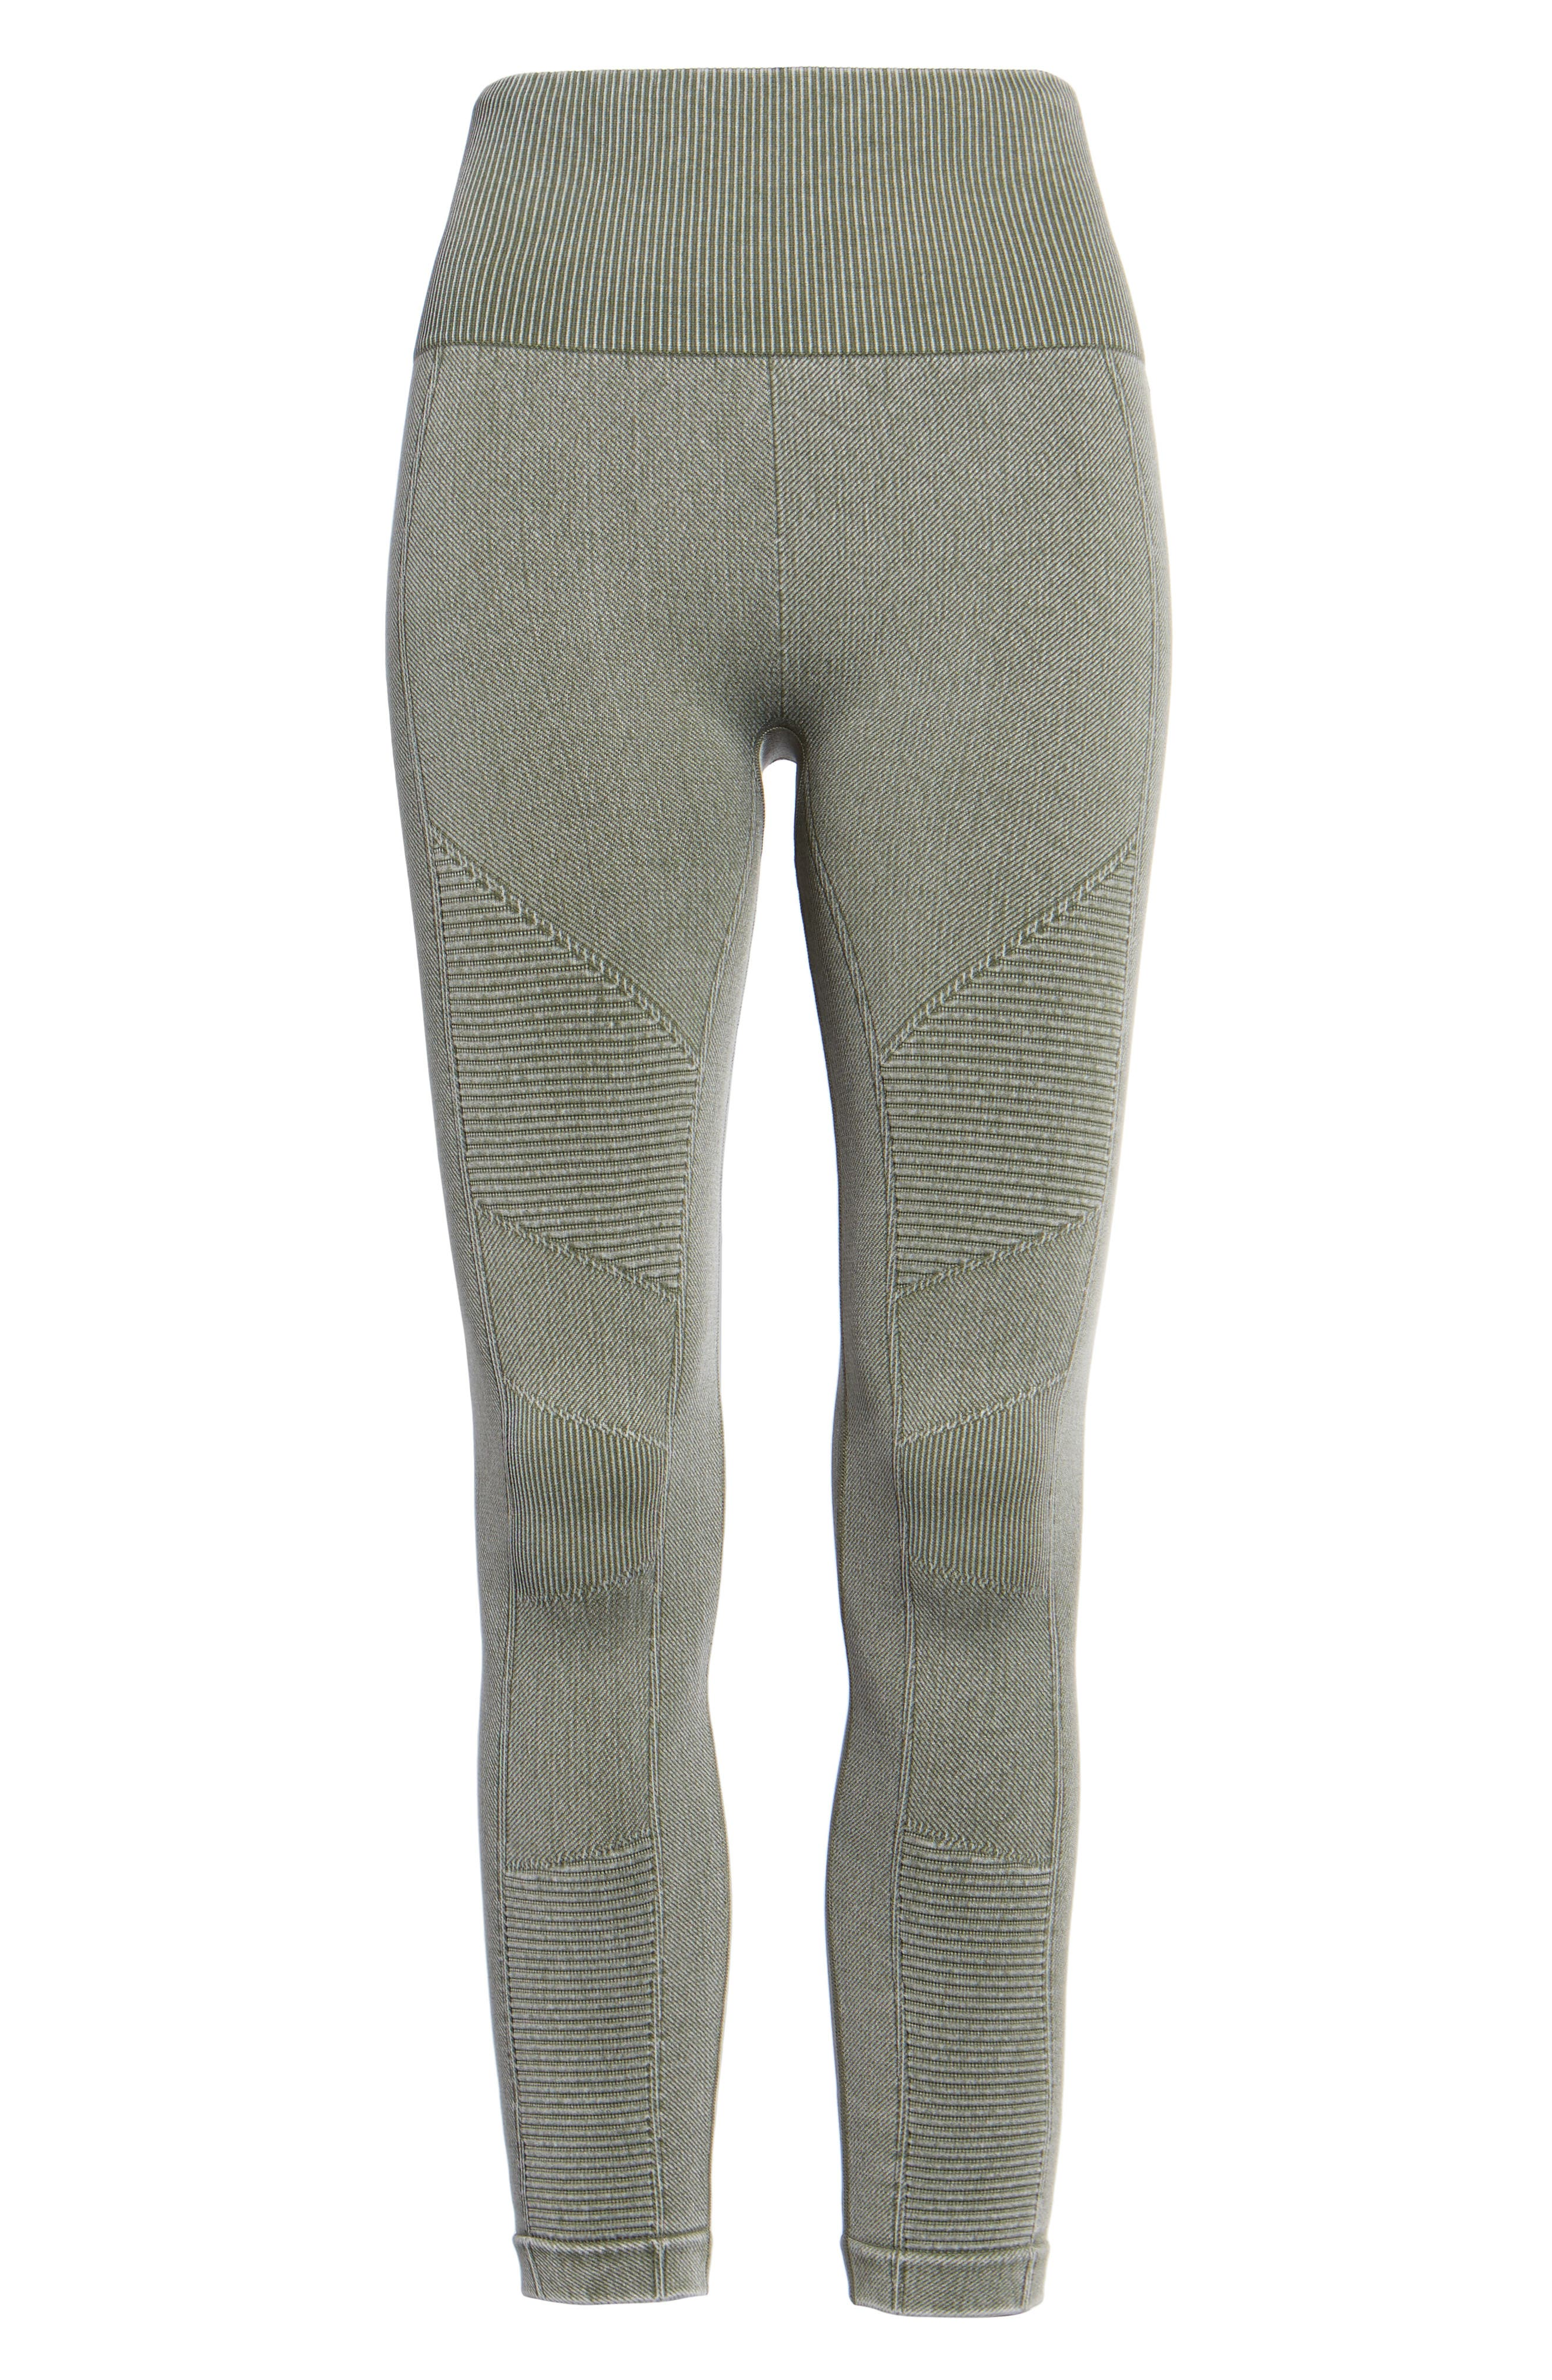 Washed Moto Seamless Skimmer Leggings,                             Alternate thumbnail 6, color,                             Fatigue Green